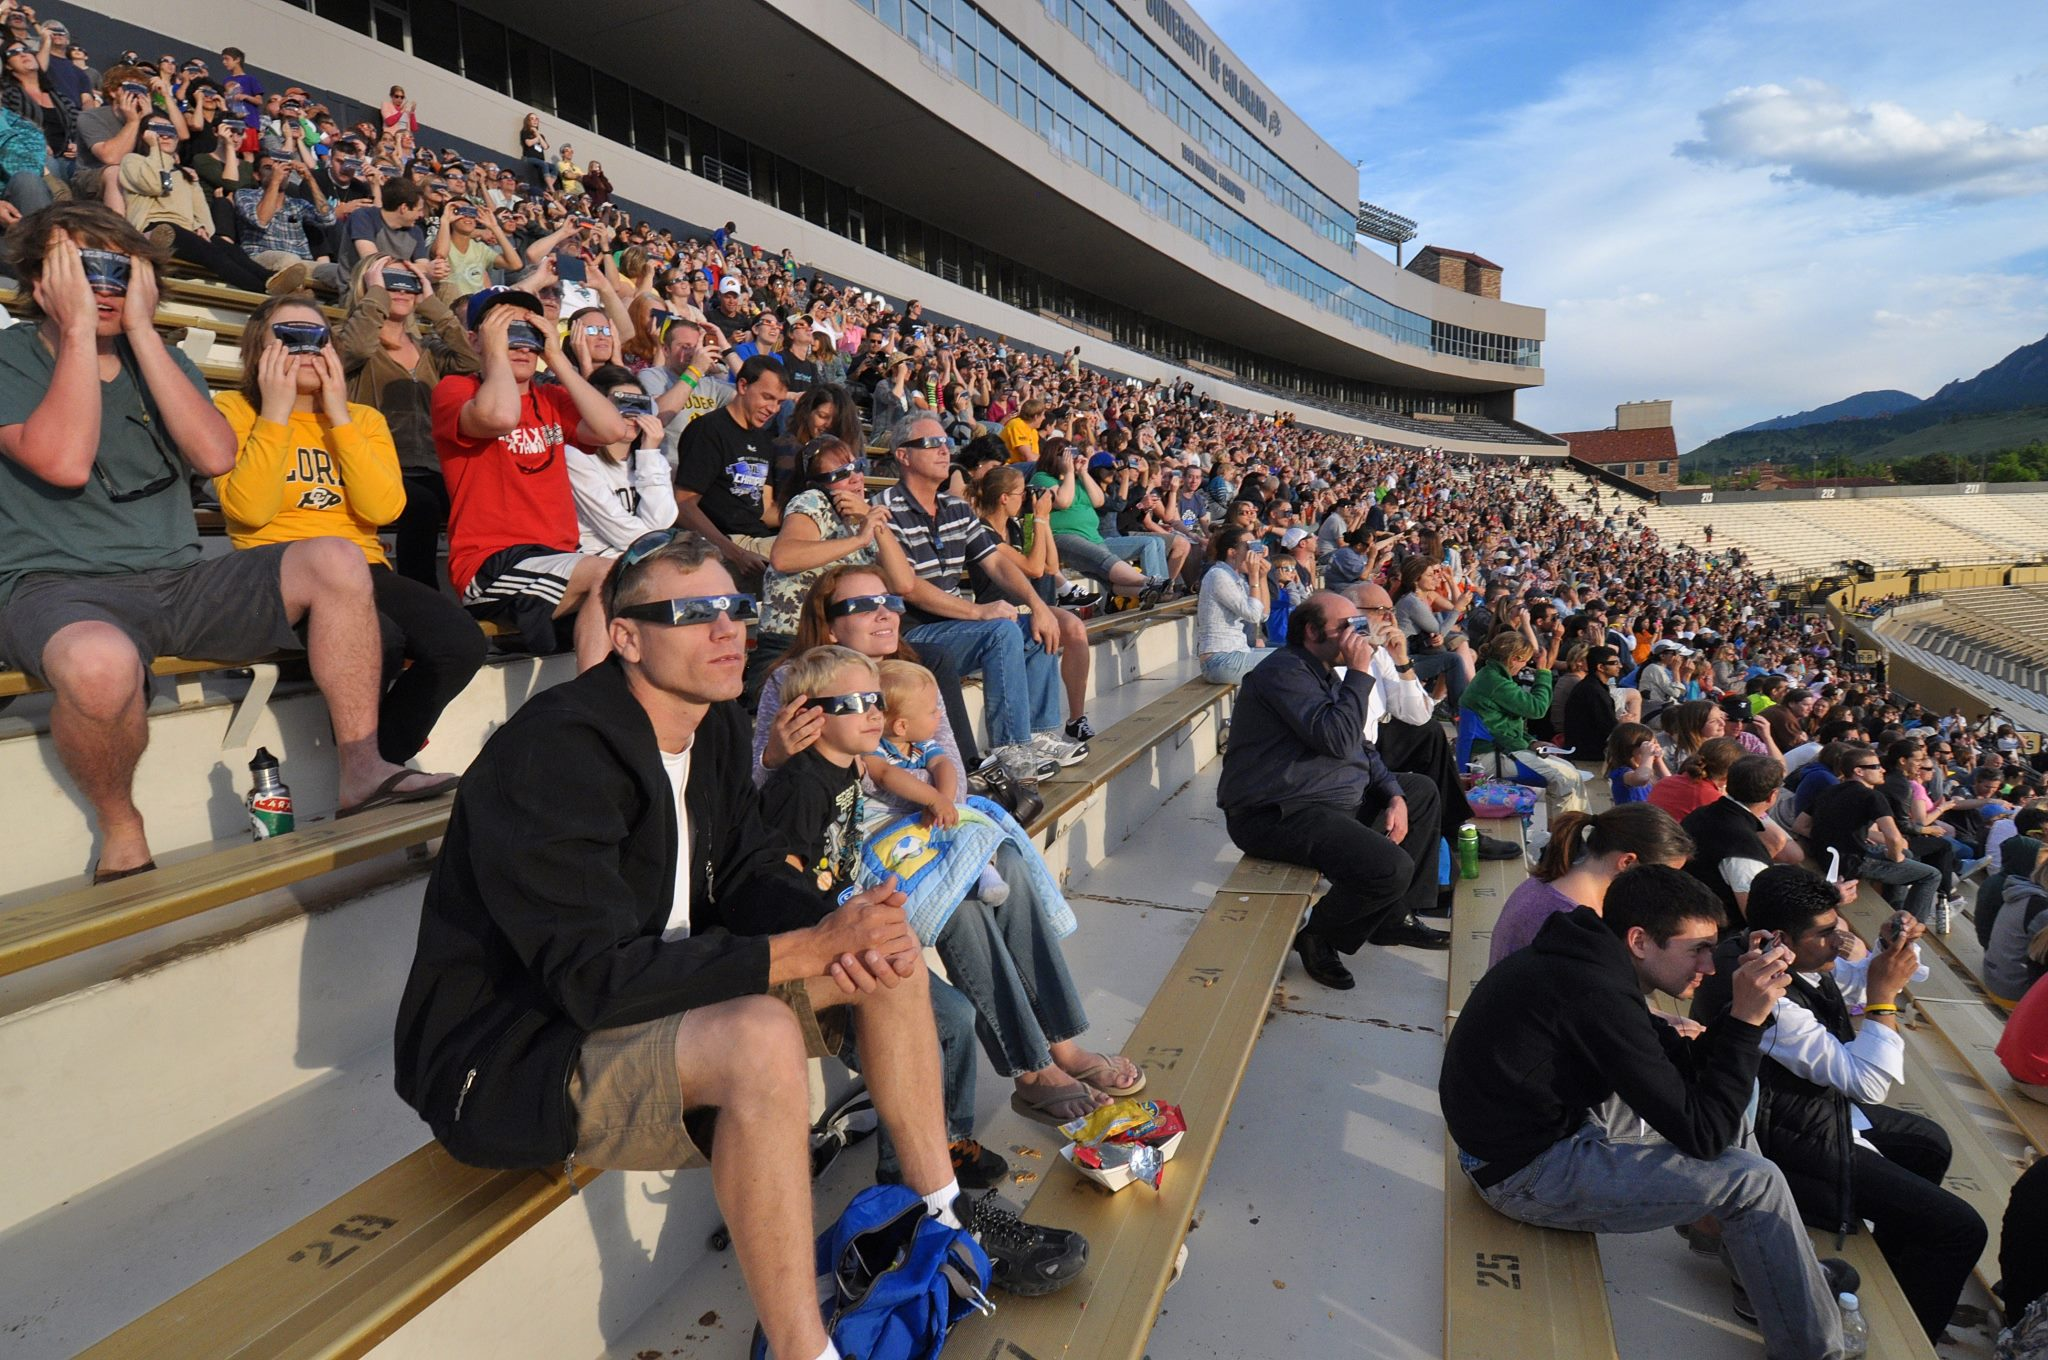 <p>Thousands of people wearing special eclipse glasses watched a partial solar eclipse at CU's Folsom Field in 2012.</p>